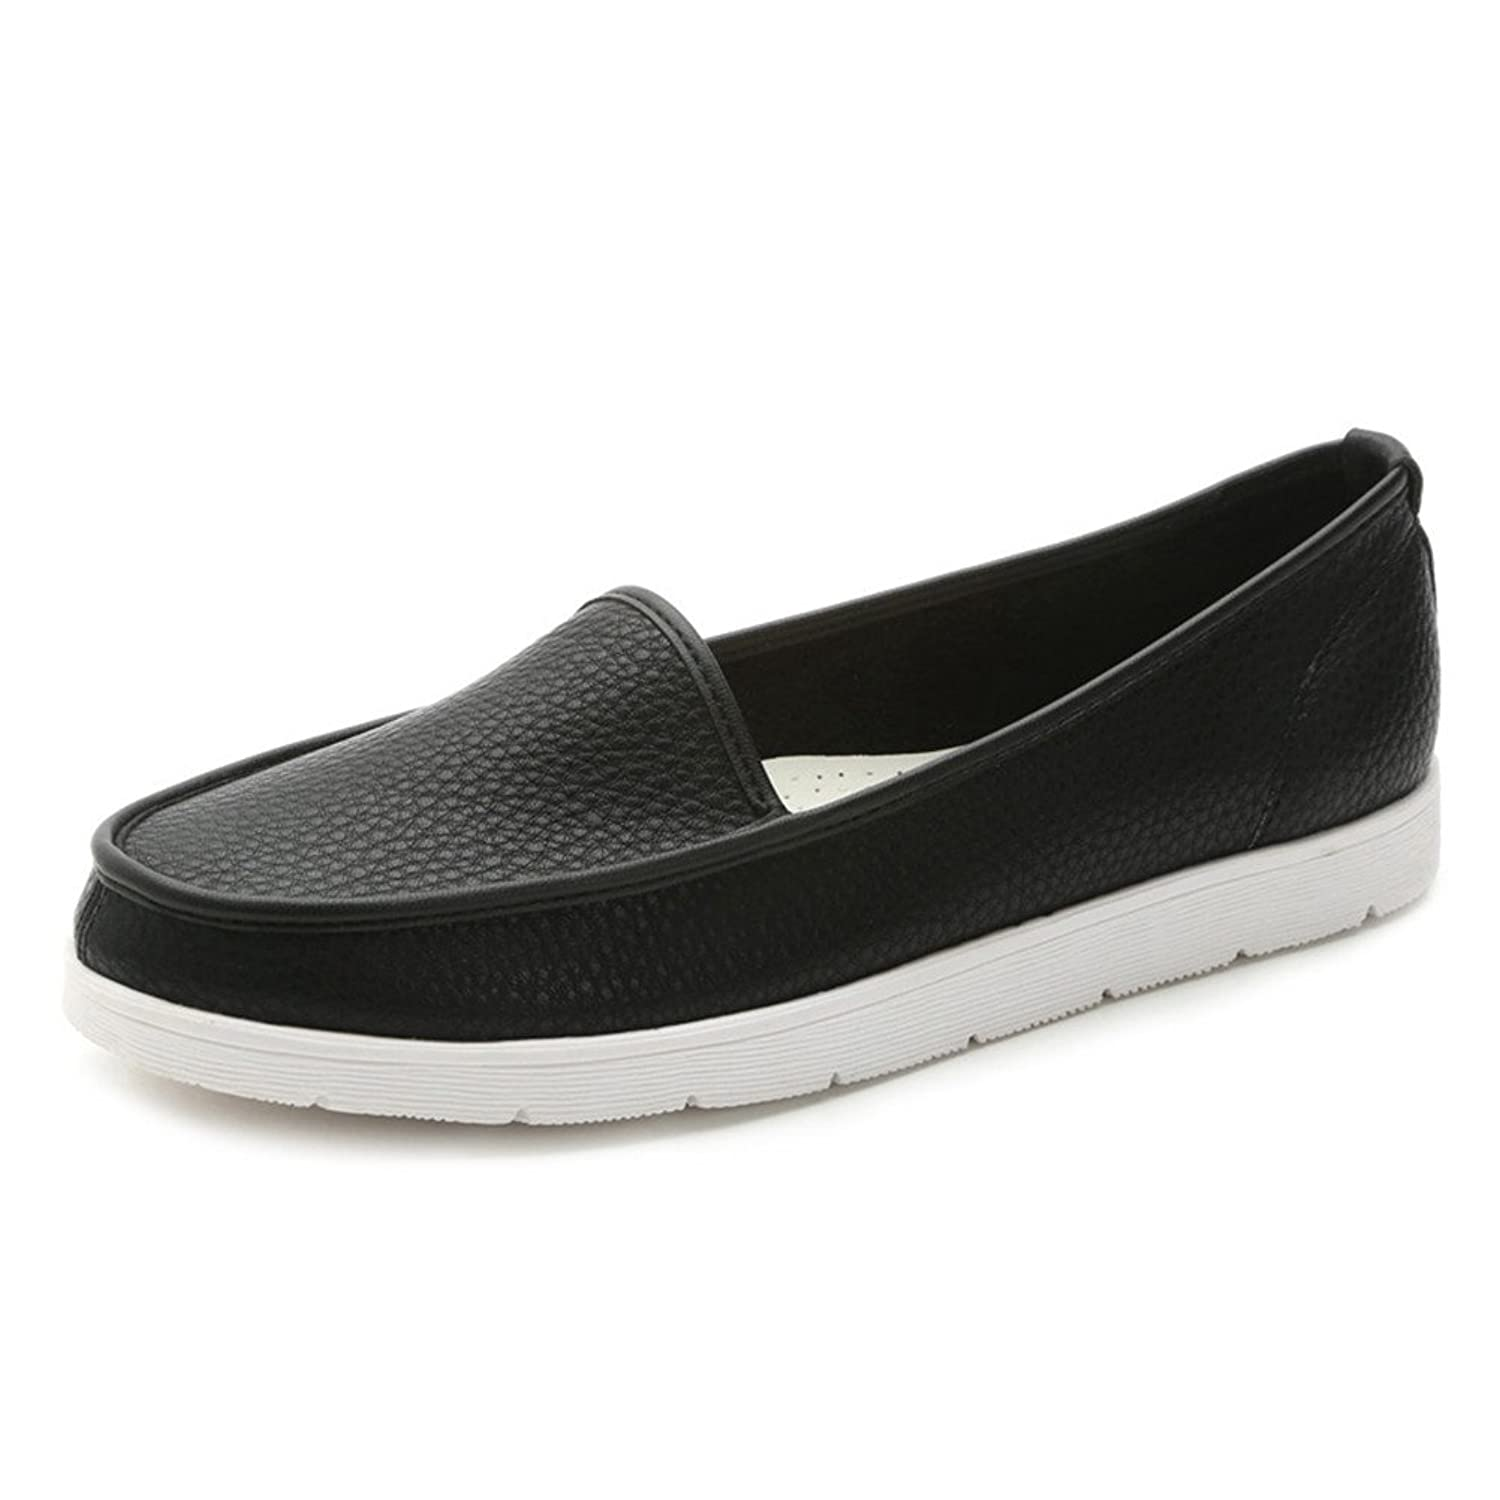 Fonshare Women's Casual Comfor Single Shoes Slip On Loafer Flats